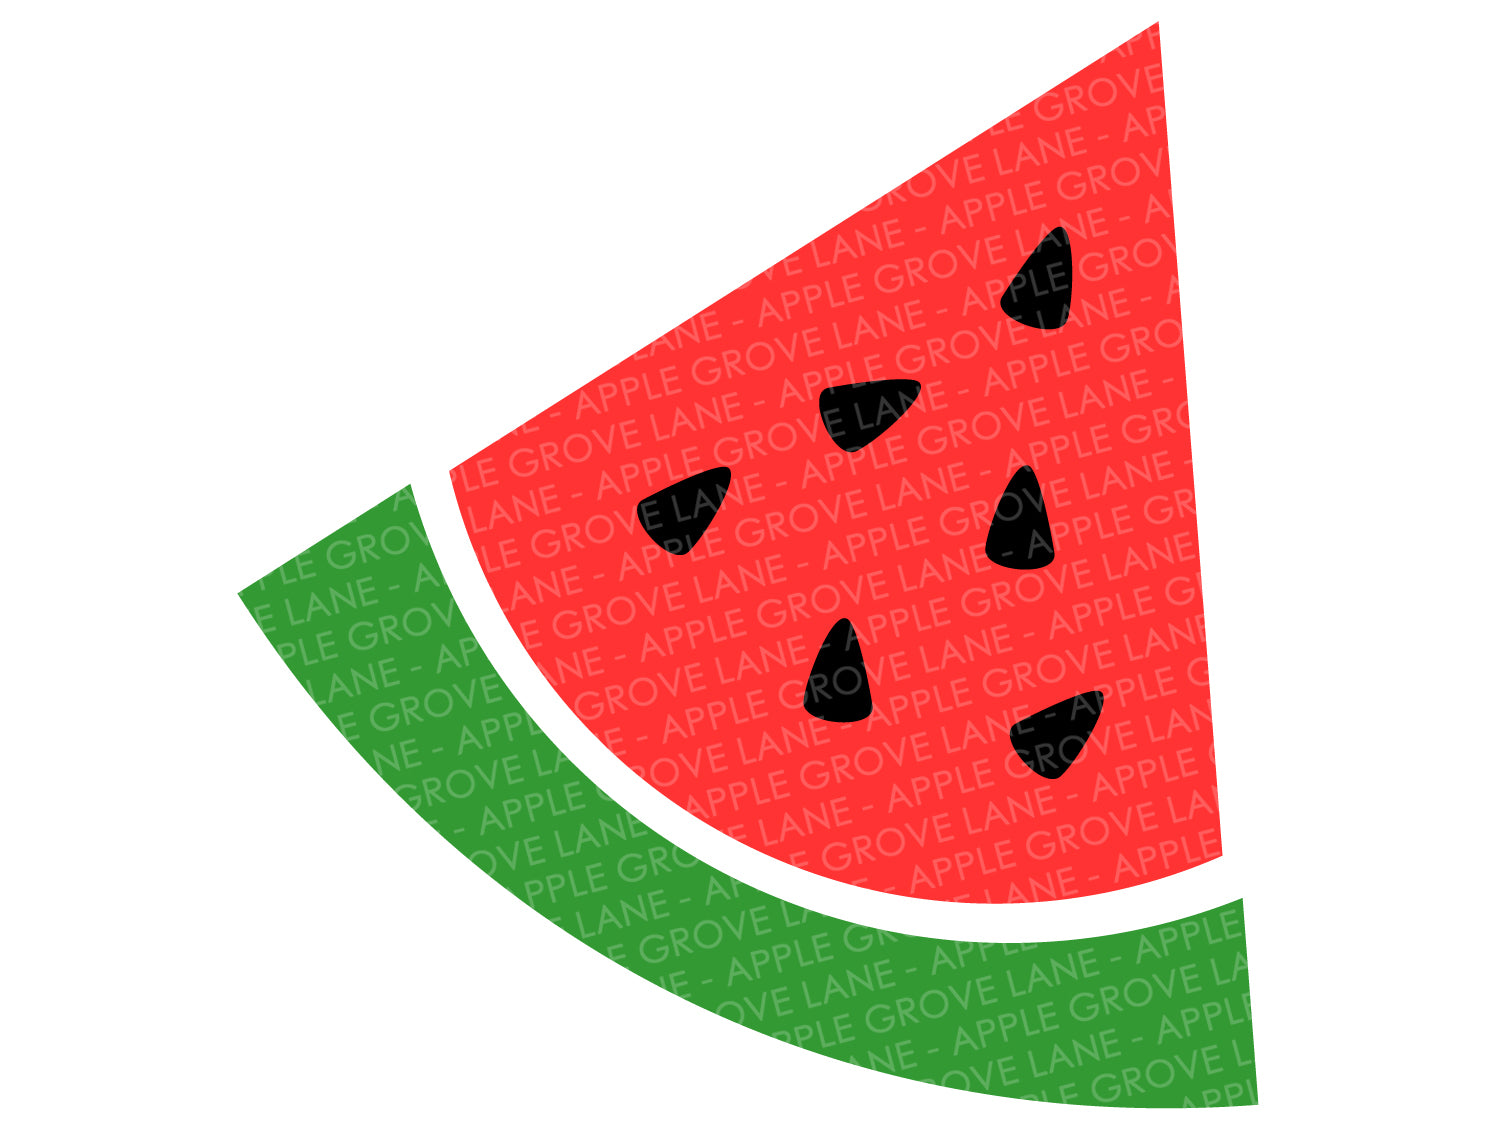 Watermelon Svg - Summer Svg - Melon Svg - Fruit Svg - Watermelon Clip Art - Fruit Clip Art - Watermelon Cut File - Svg Eps Dxf Png